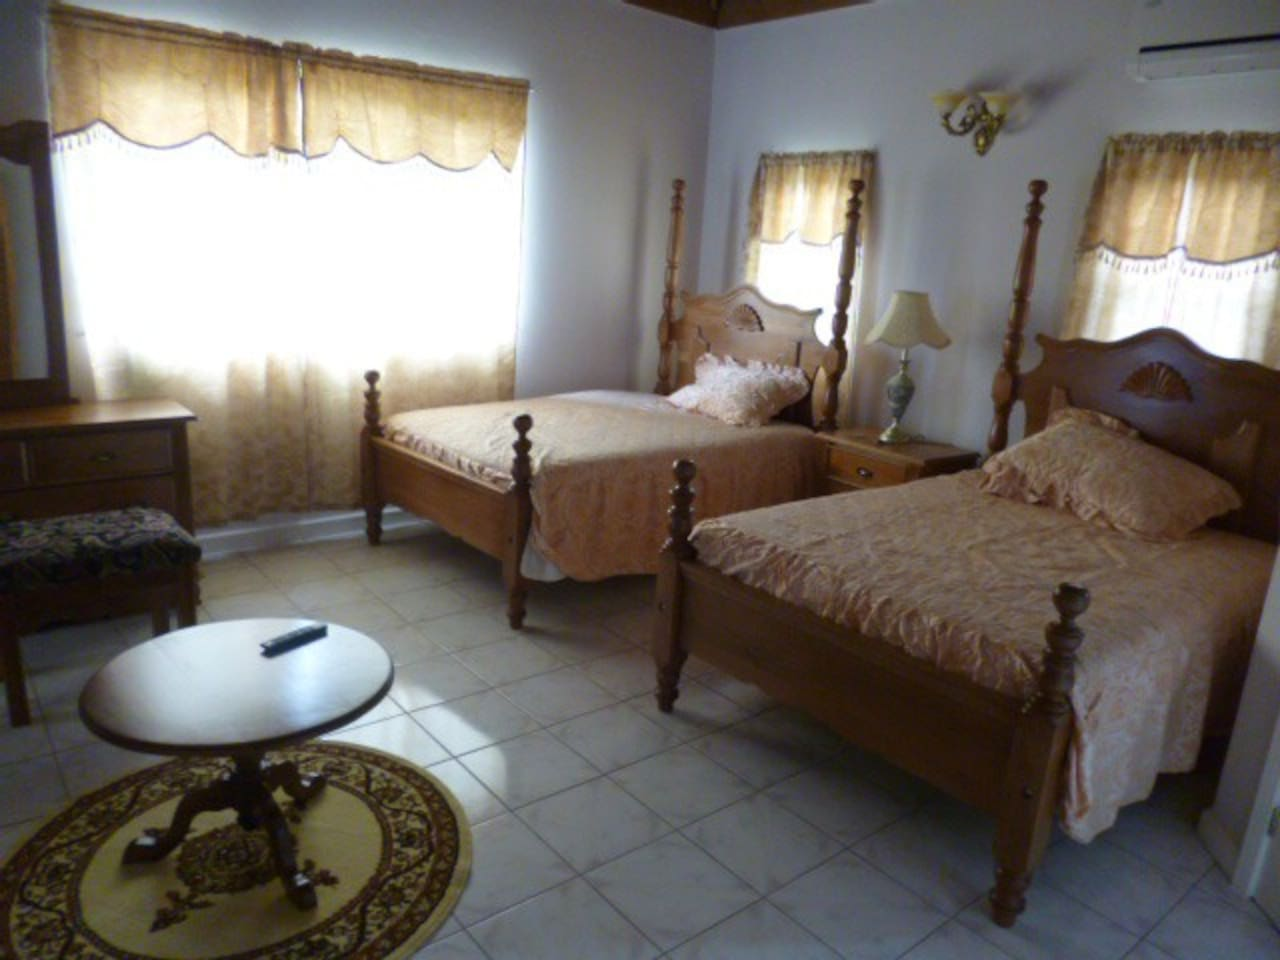 Family Ensuite. 2 Double Beds. Clean comfortable room with Air Conditioning and sea views